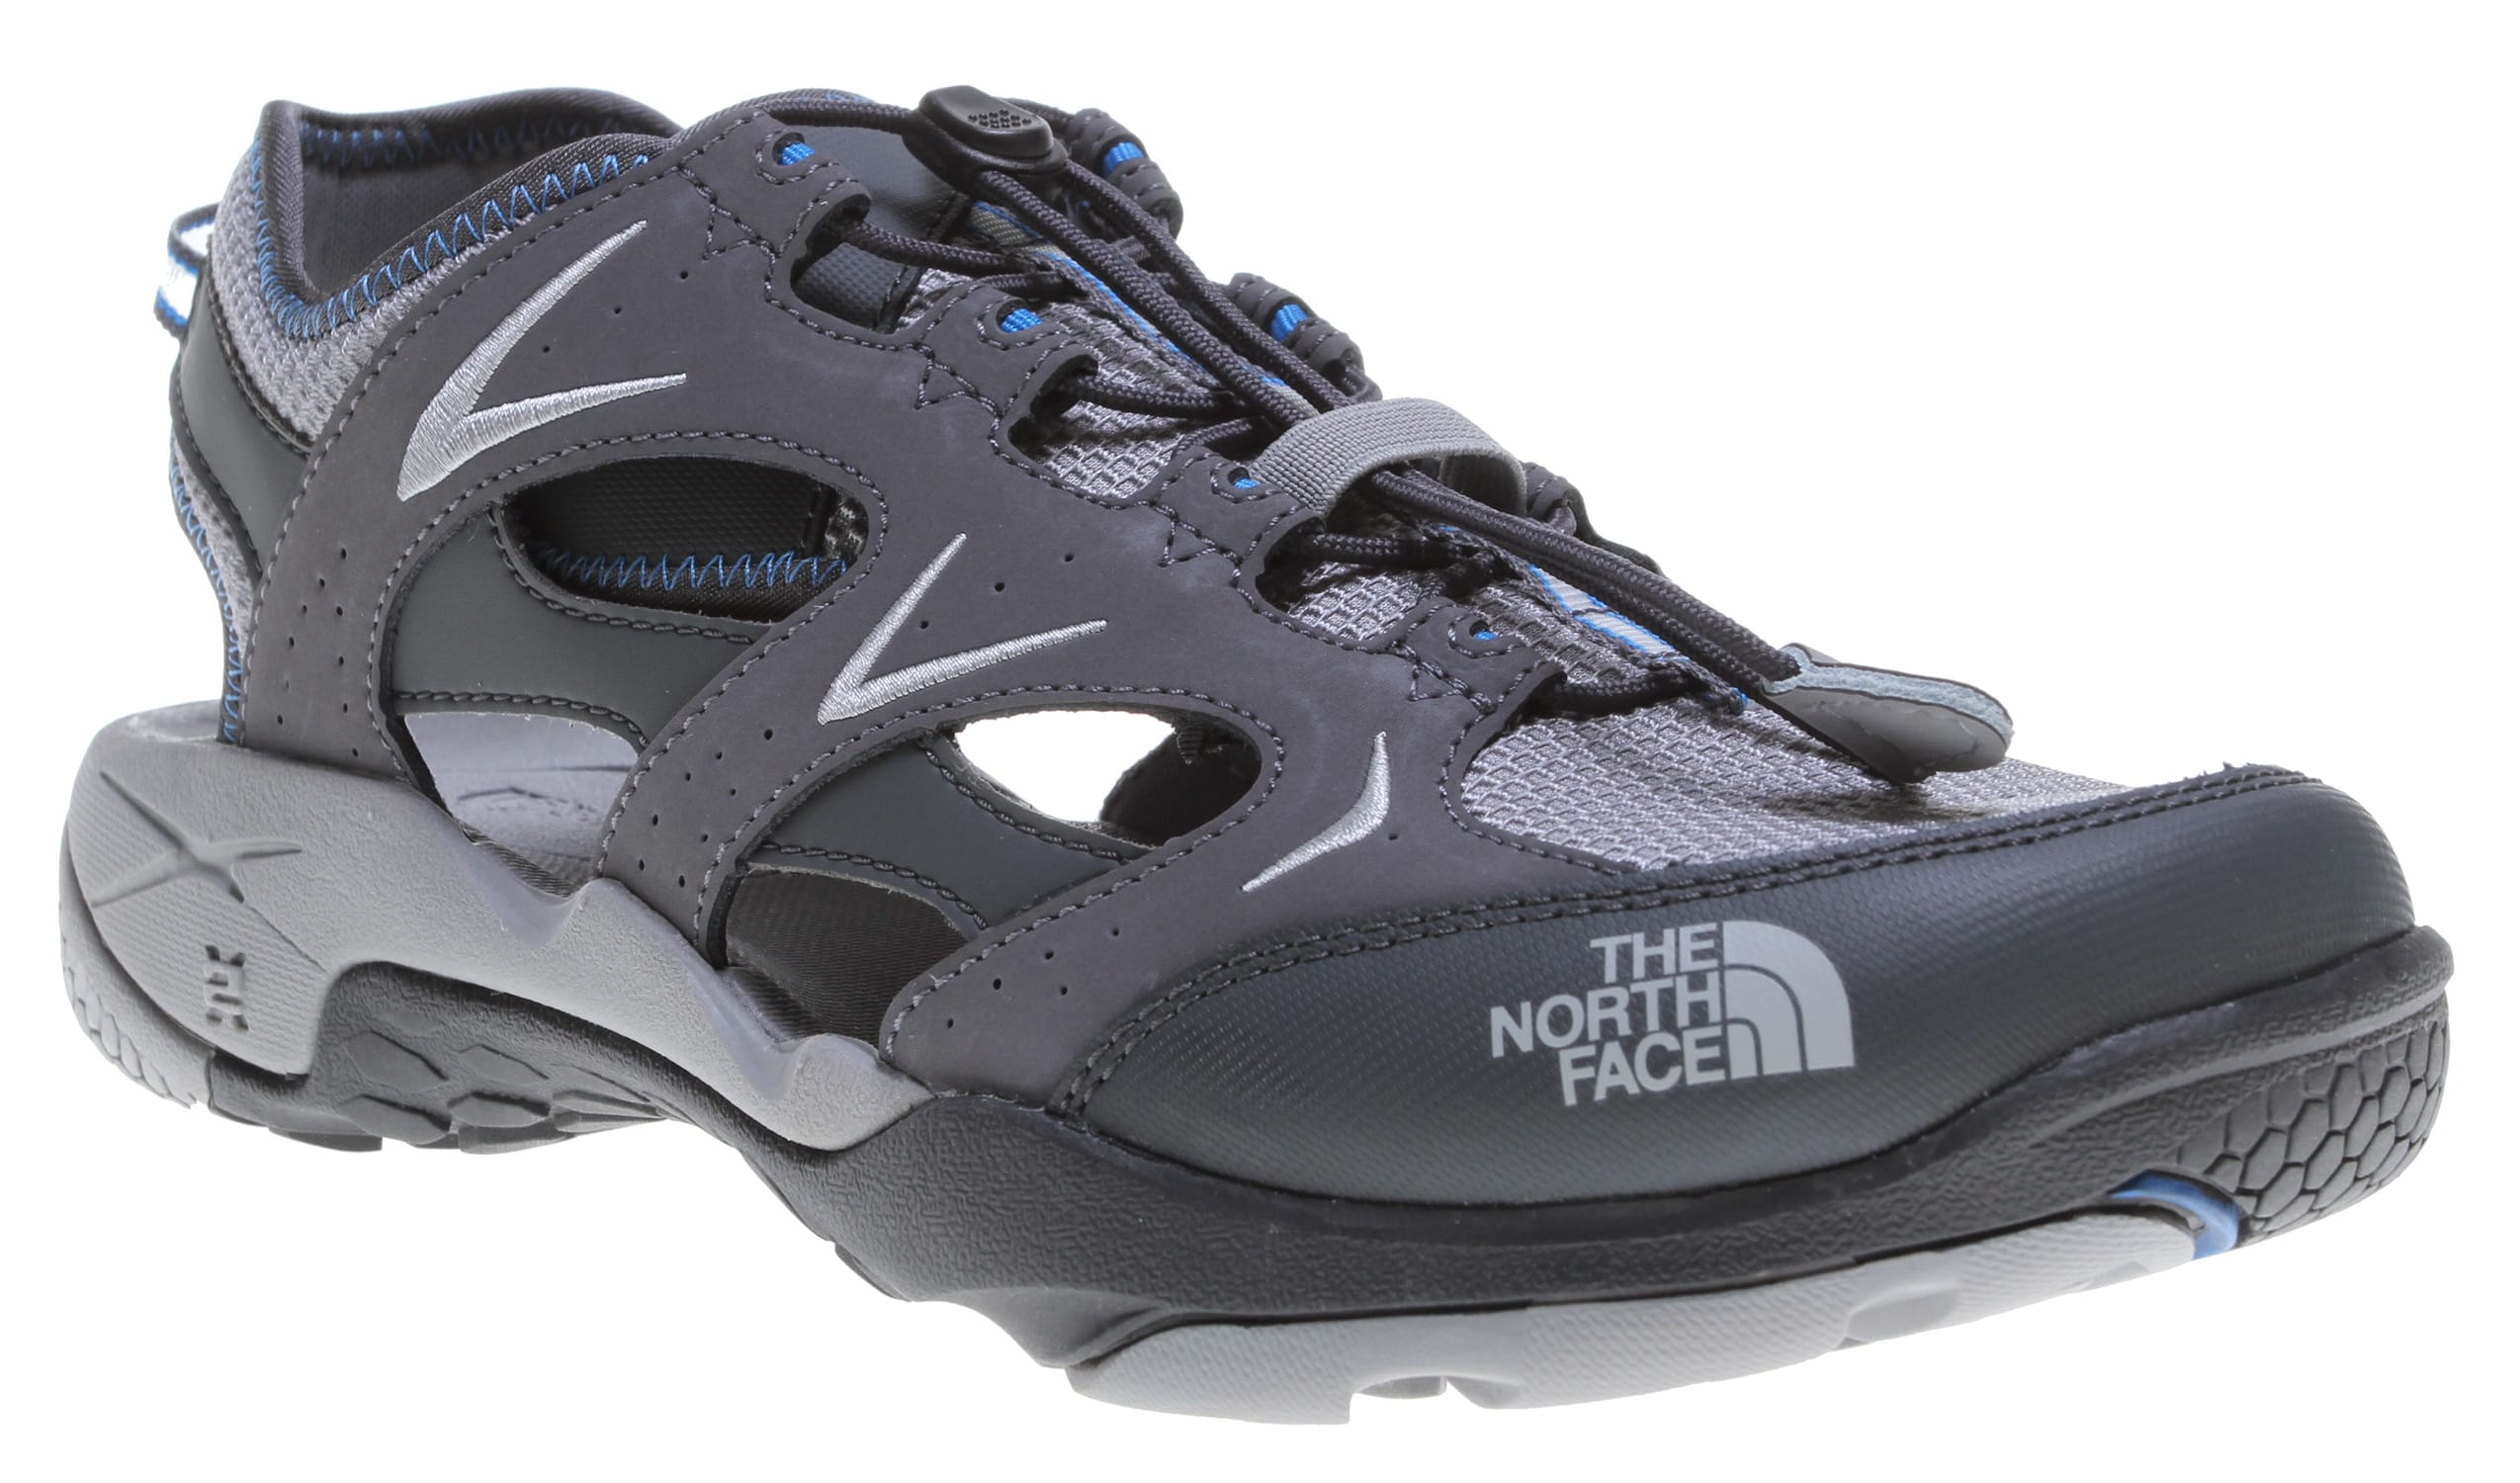 e4824e524 The North Face Hedgefrog II Water Shoes Zinc Grey/Athens Blue on ...